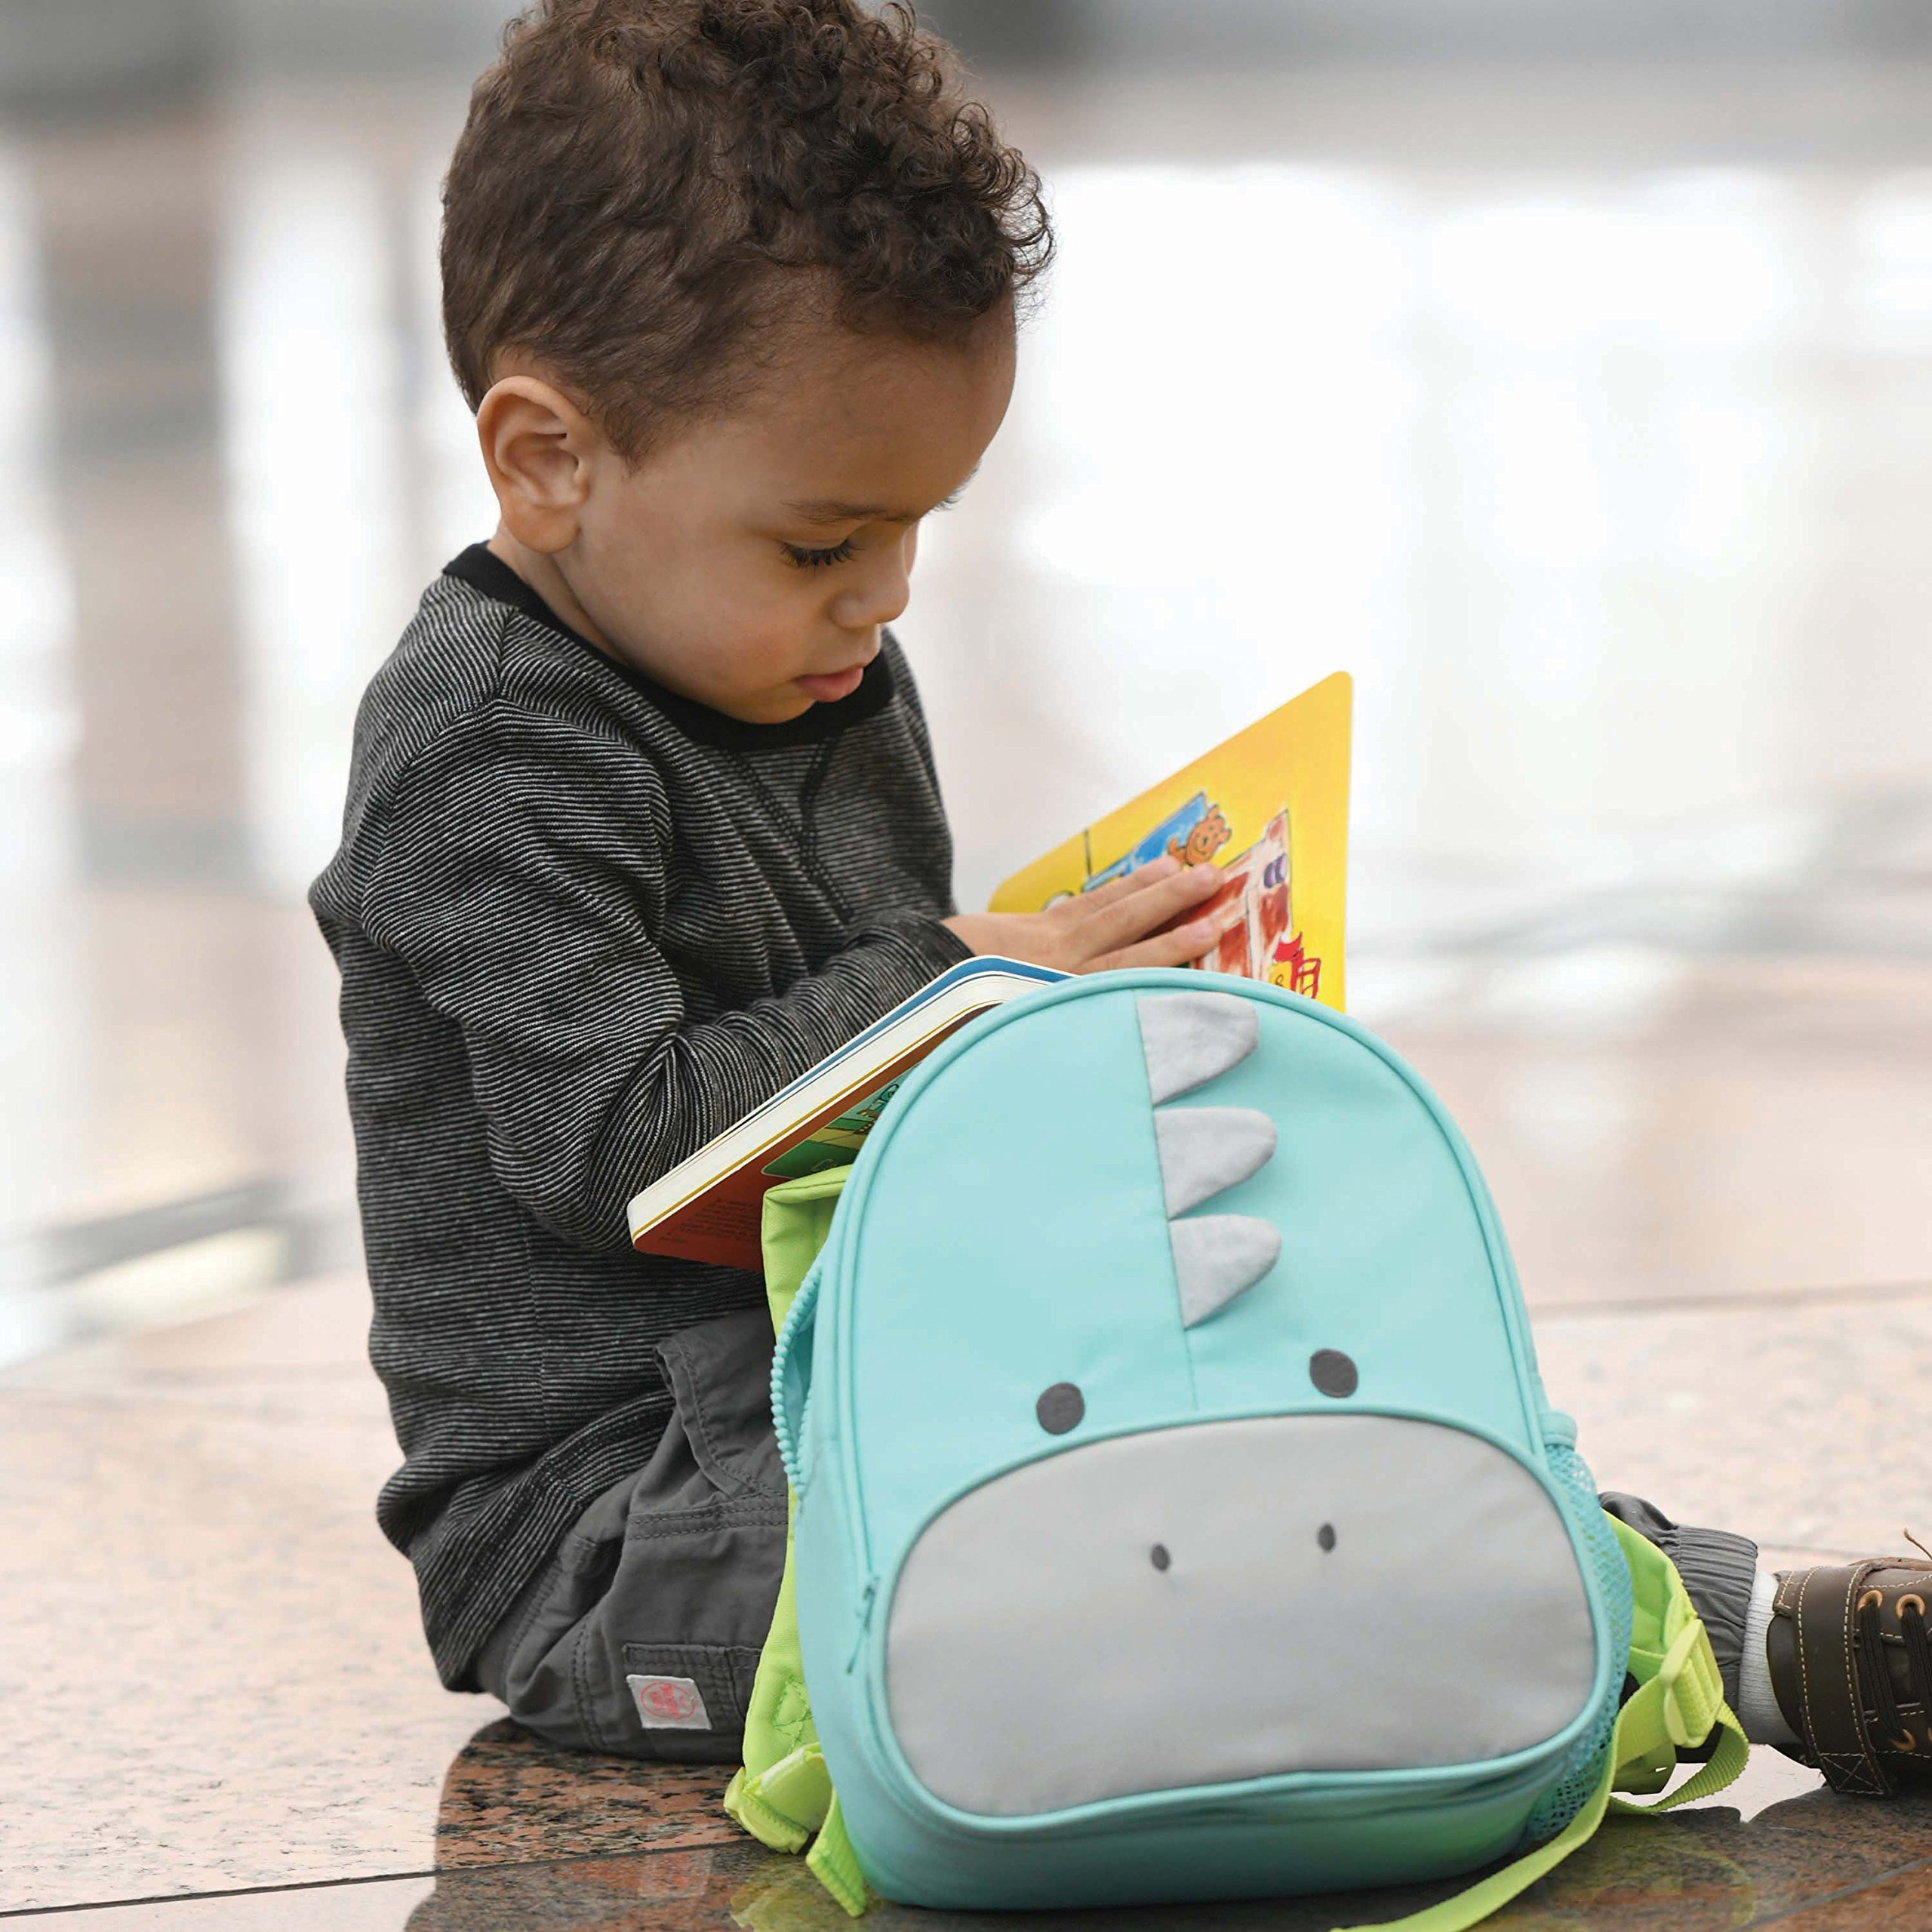 Travel Bug Toddler Safety Dinosaur Backpack Harness with Removable Tether, Teal/Grey by Travel Bug (Image #3)